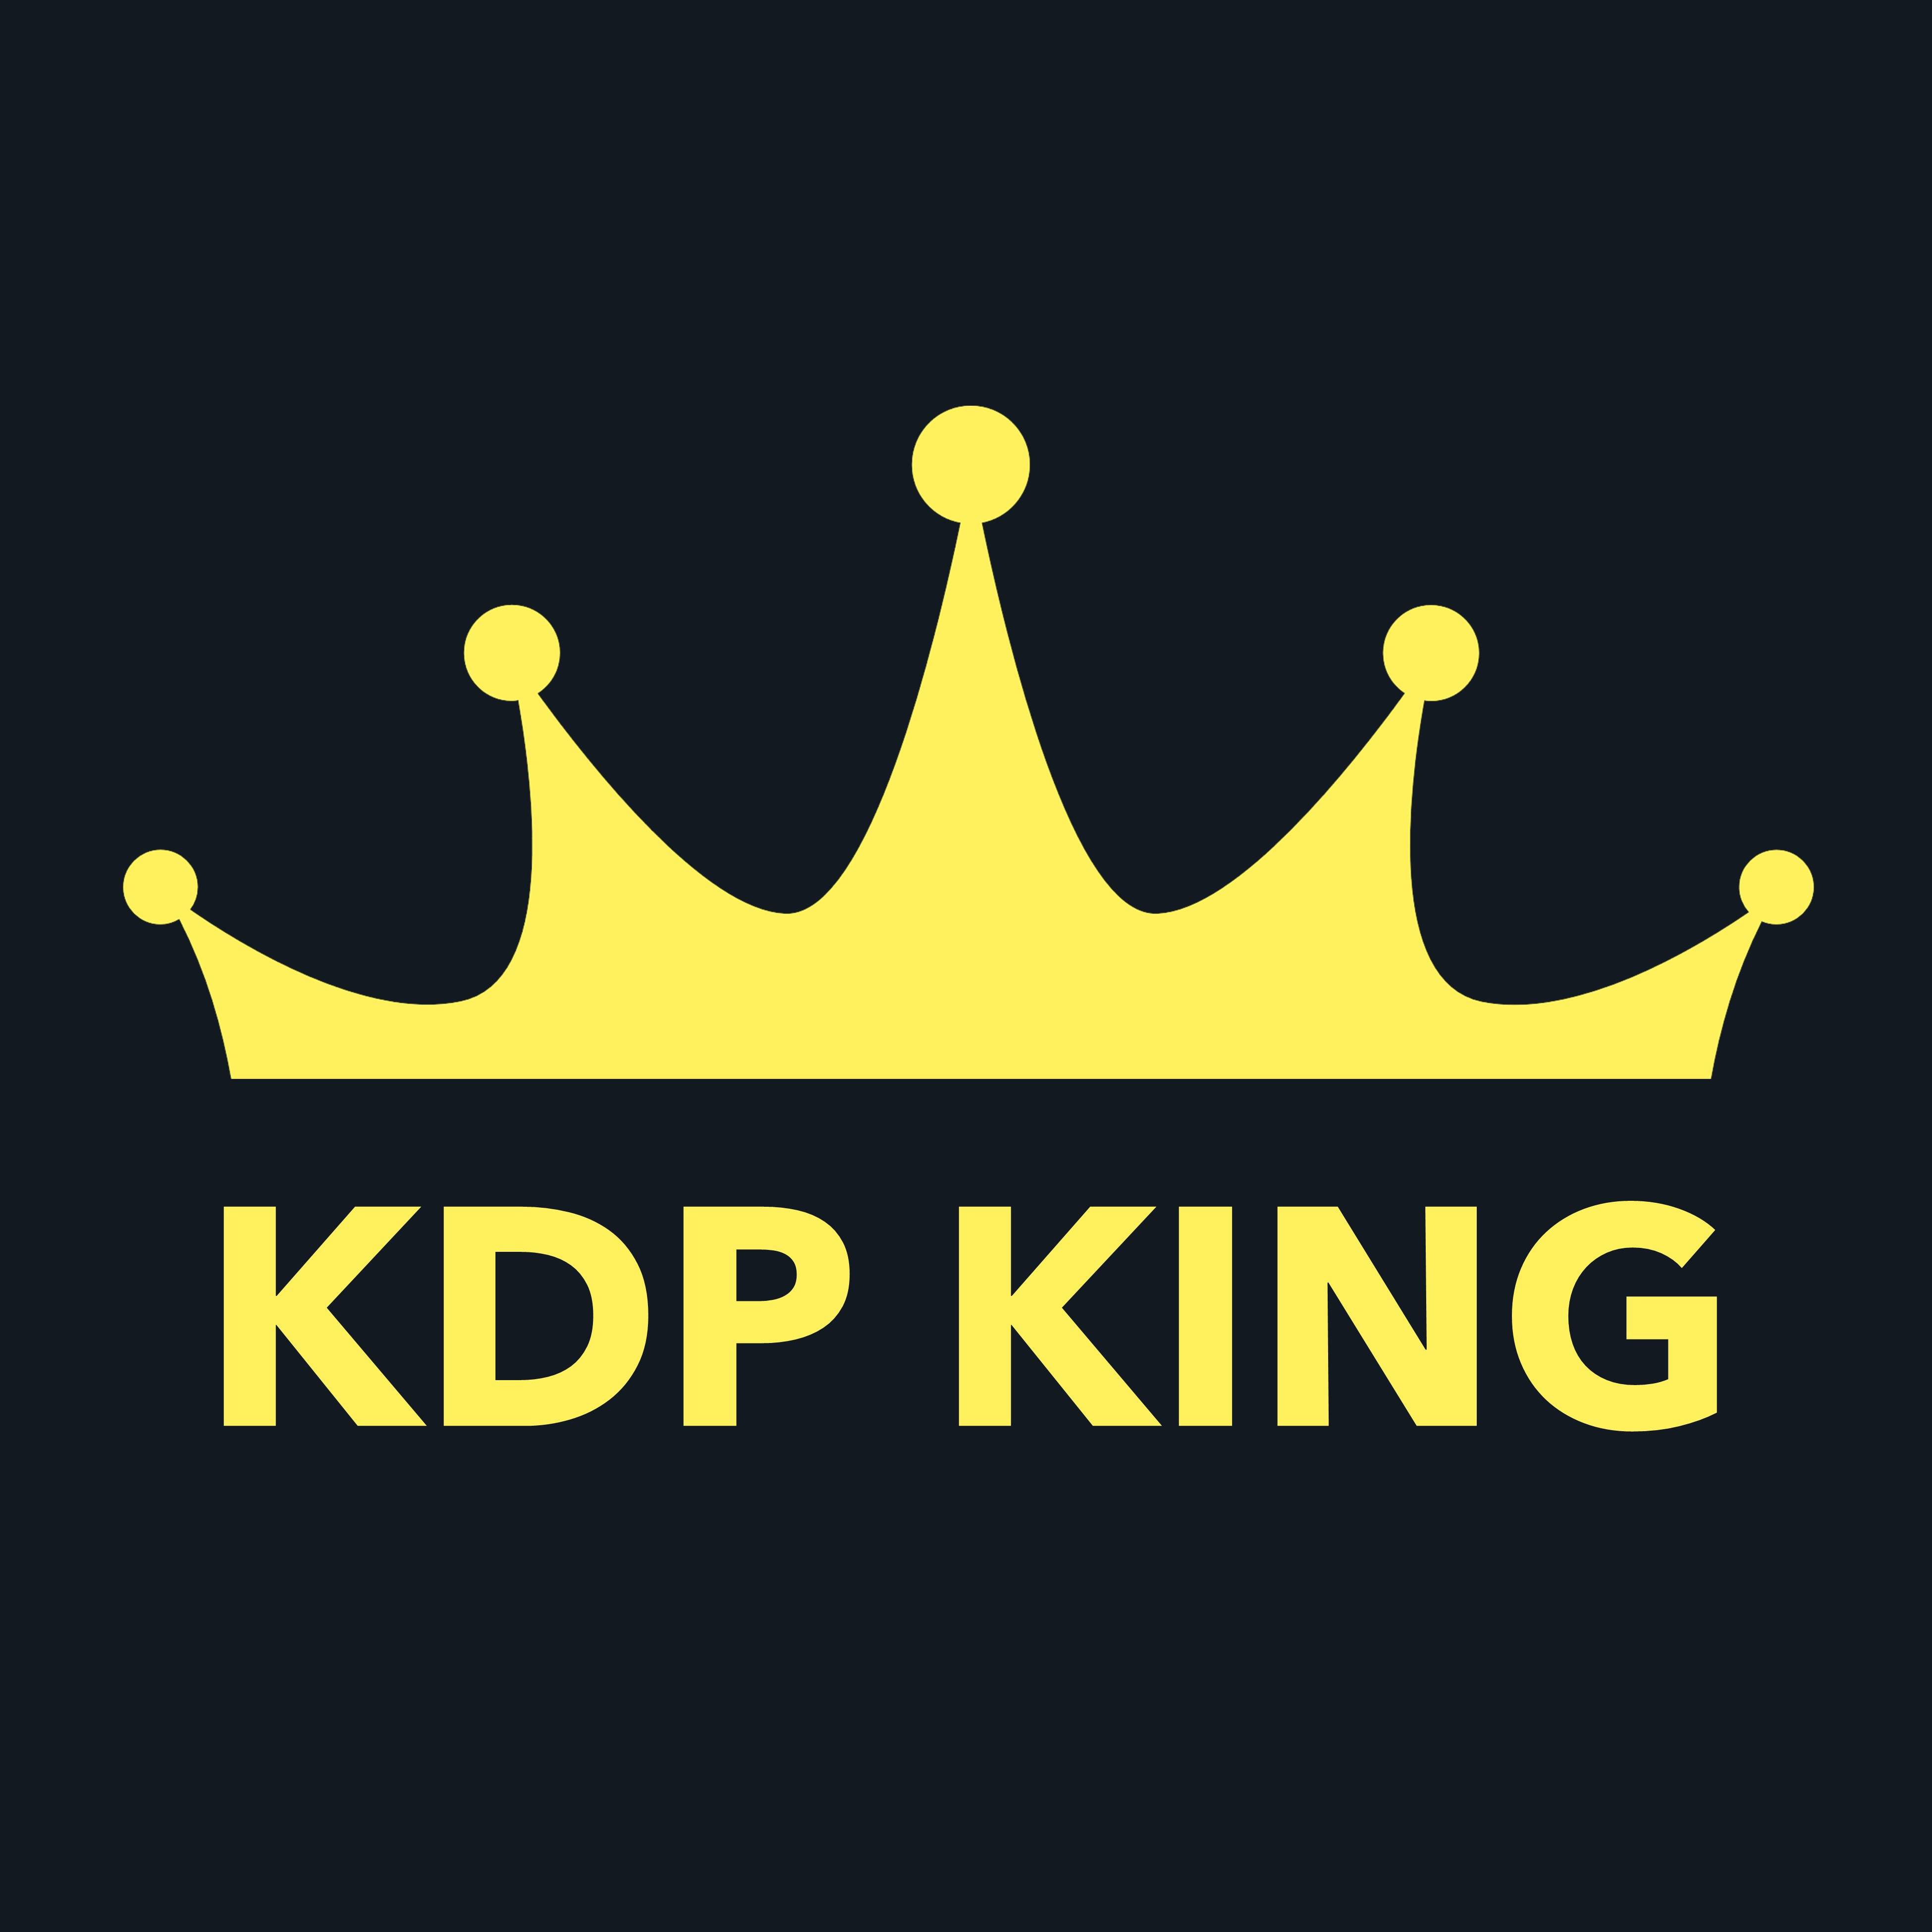 KDP King's profile picture